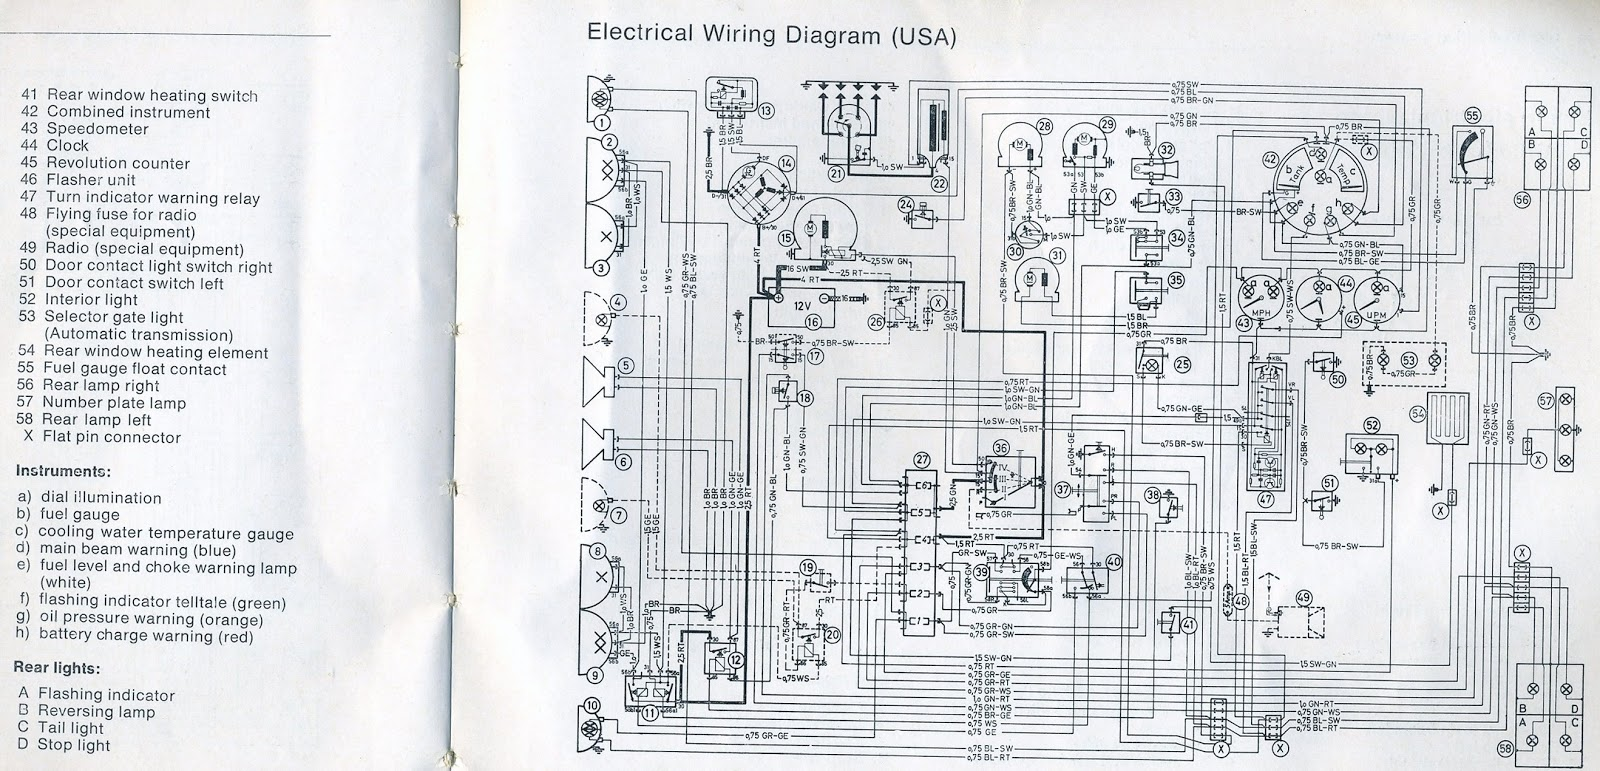 Ews3 Wiring Diagram Wiring Diagram